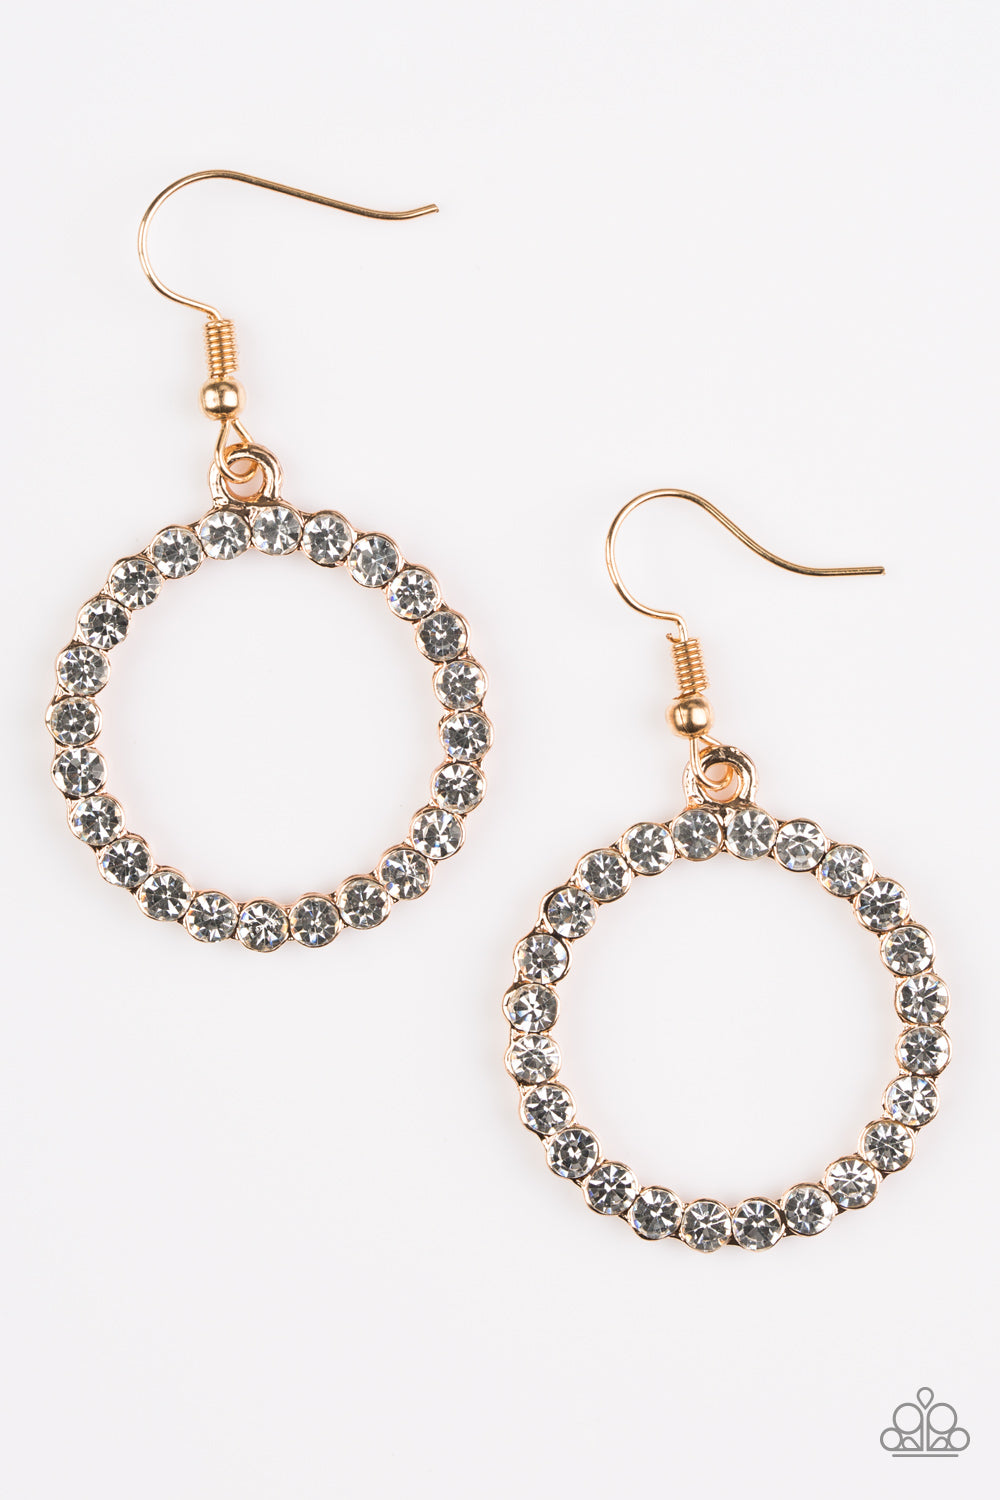 five-dollar-jewelry-bubblicious-gold-earrings-paparazzi-accessories